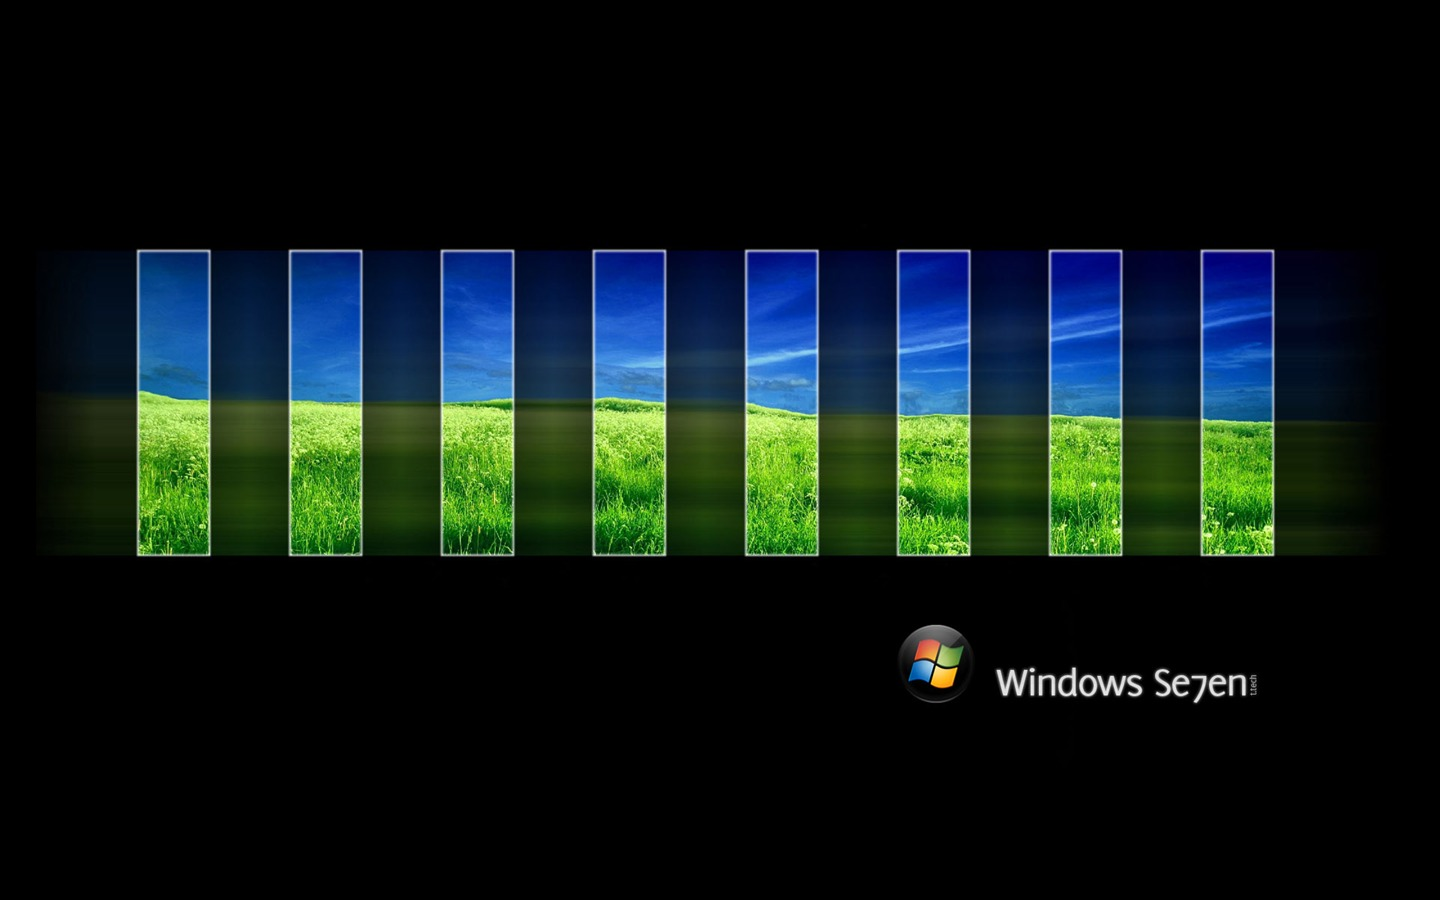 windows 7 wallpaper themes hd